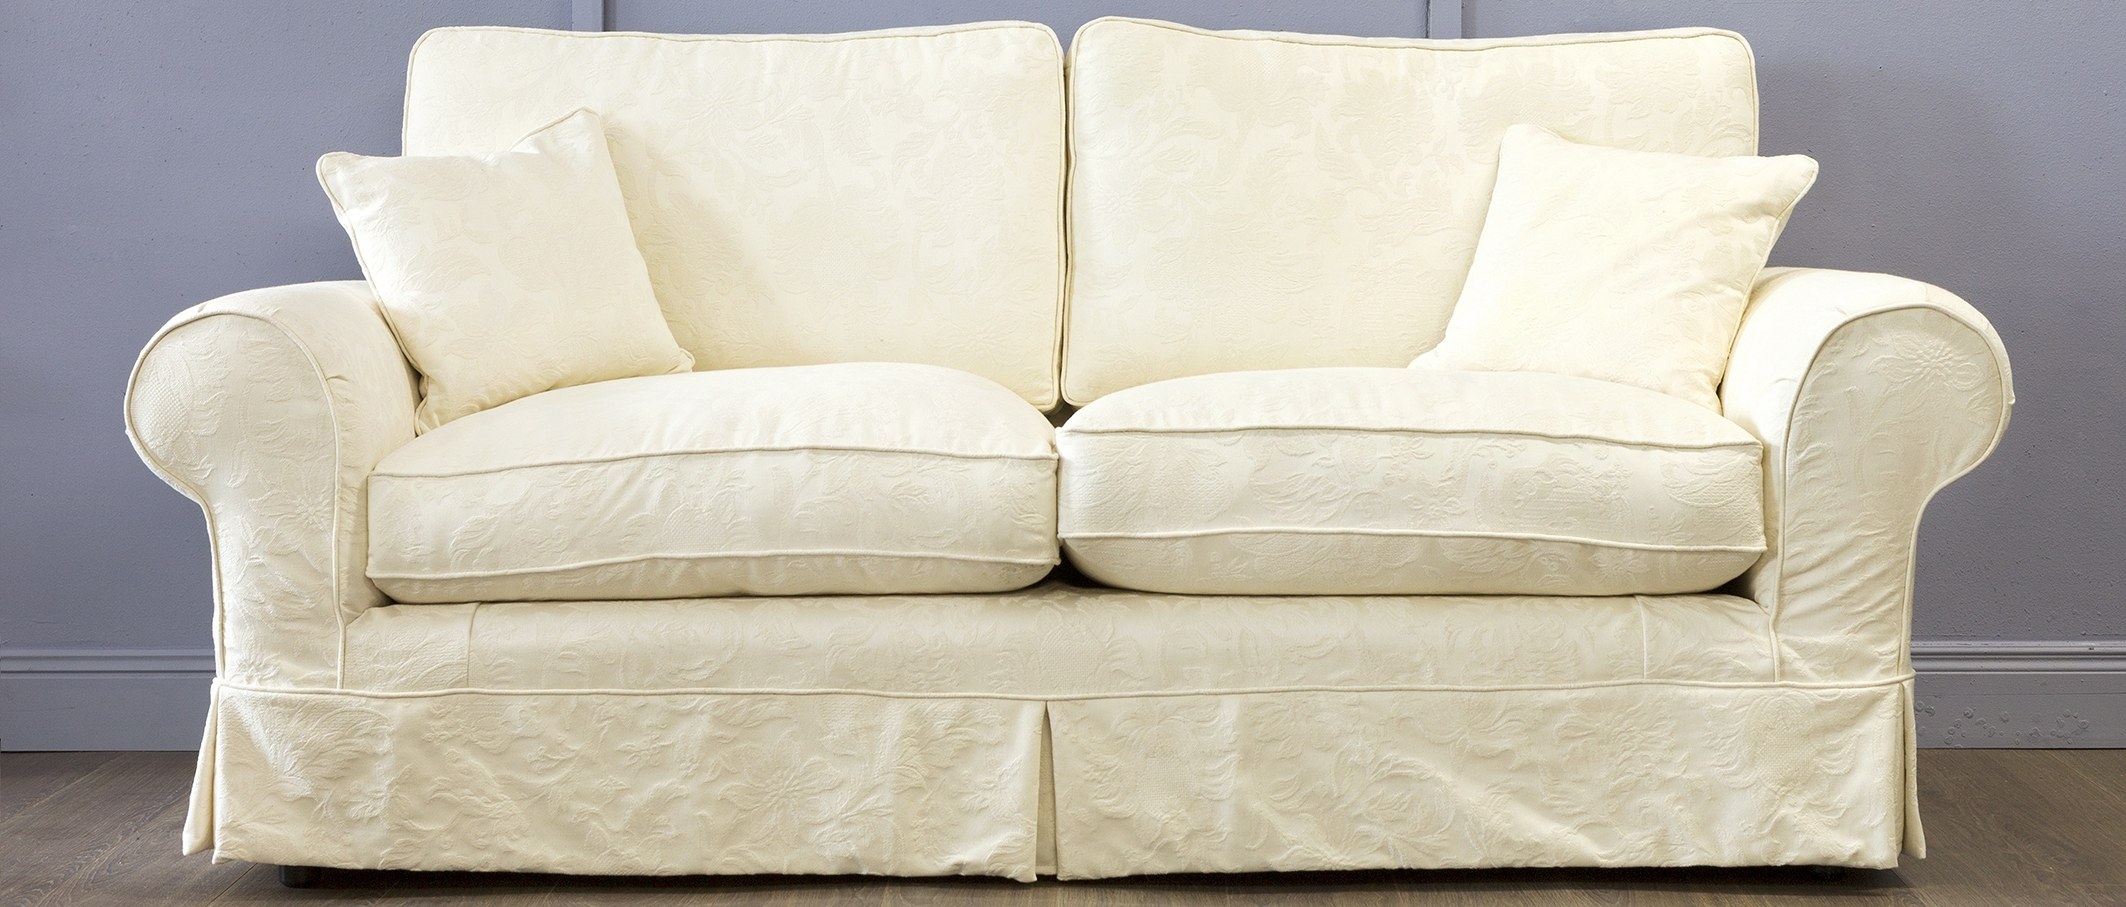 Sofas With Removable Washable Covers – Fjellkjeden Inside Recent Sofas With Washable Covers (View 3 of 15)